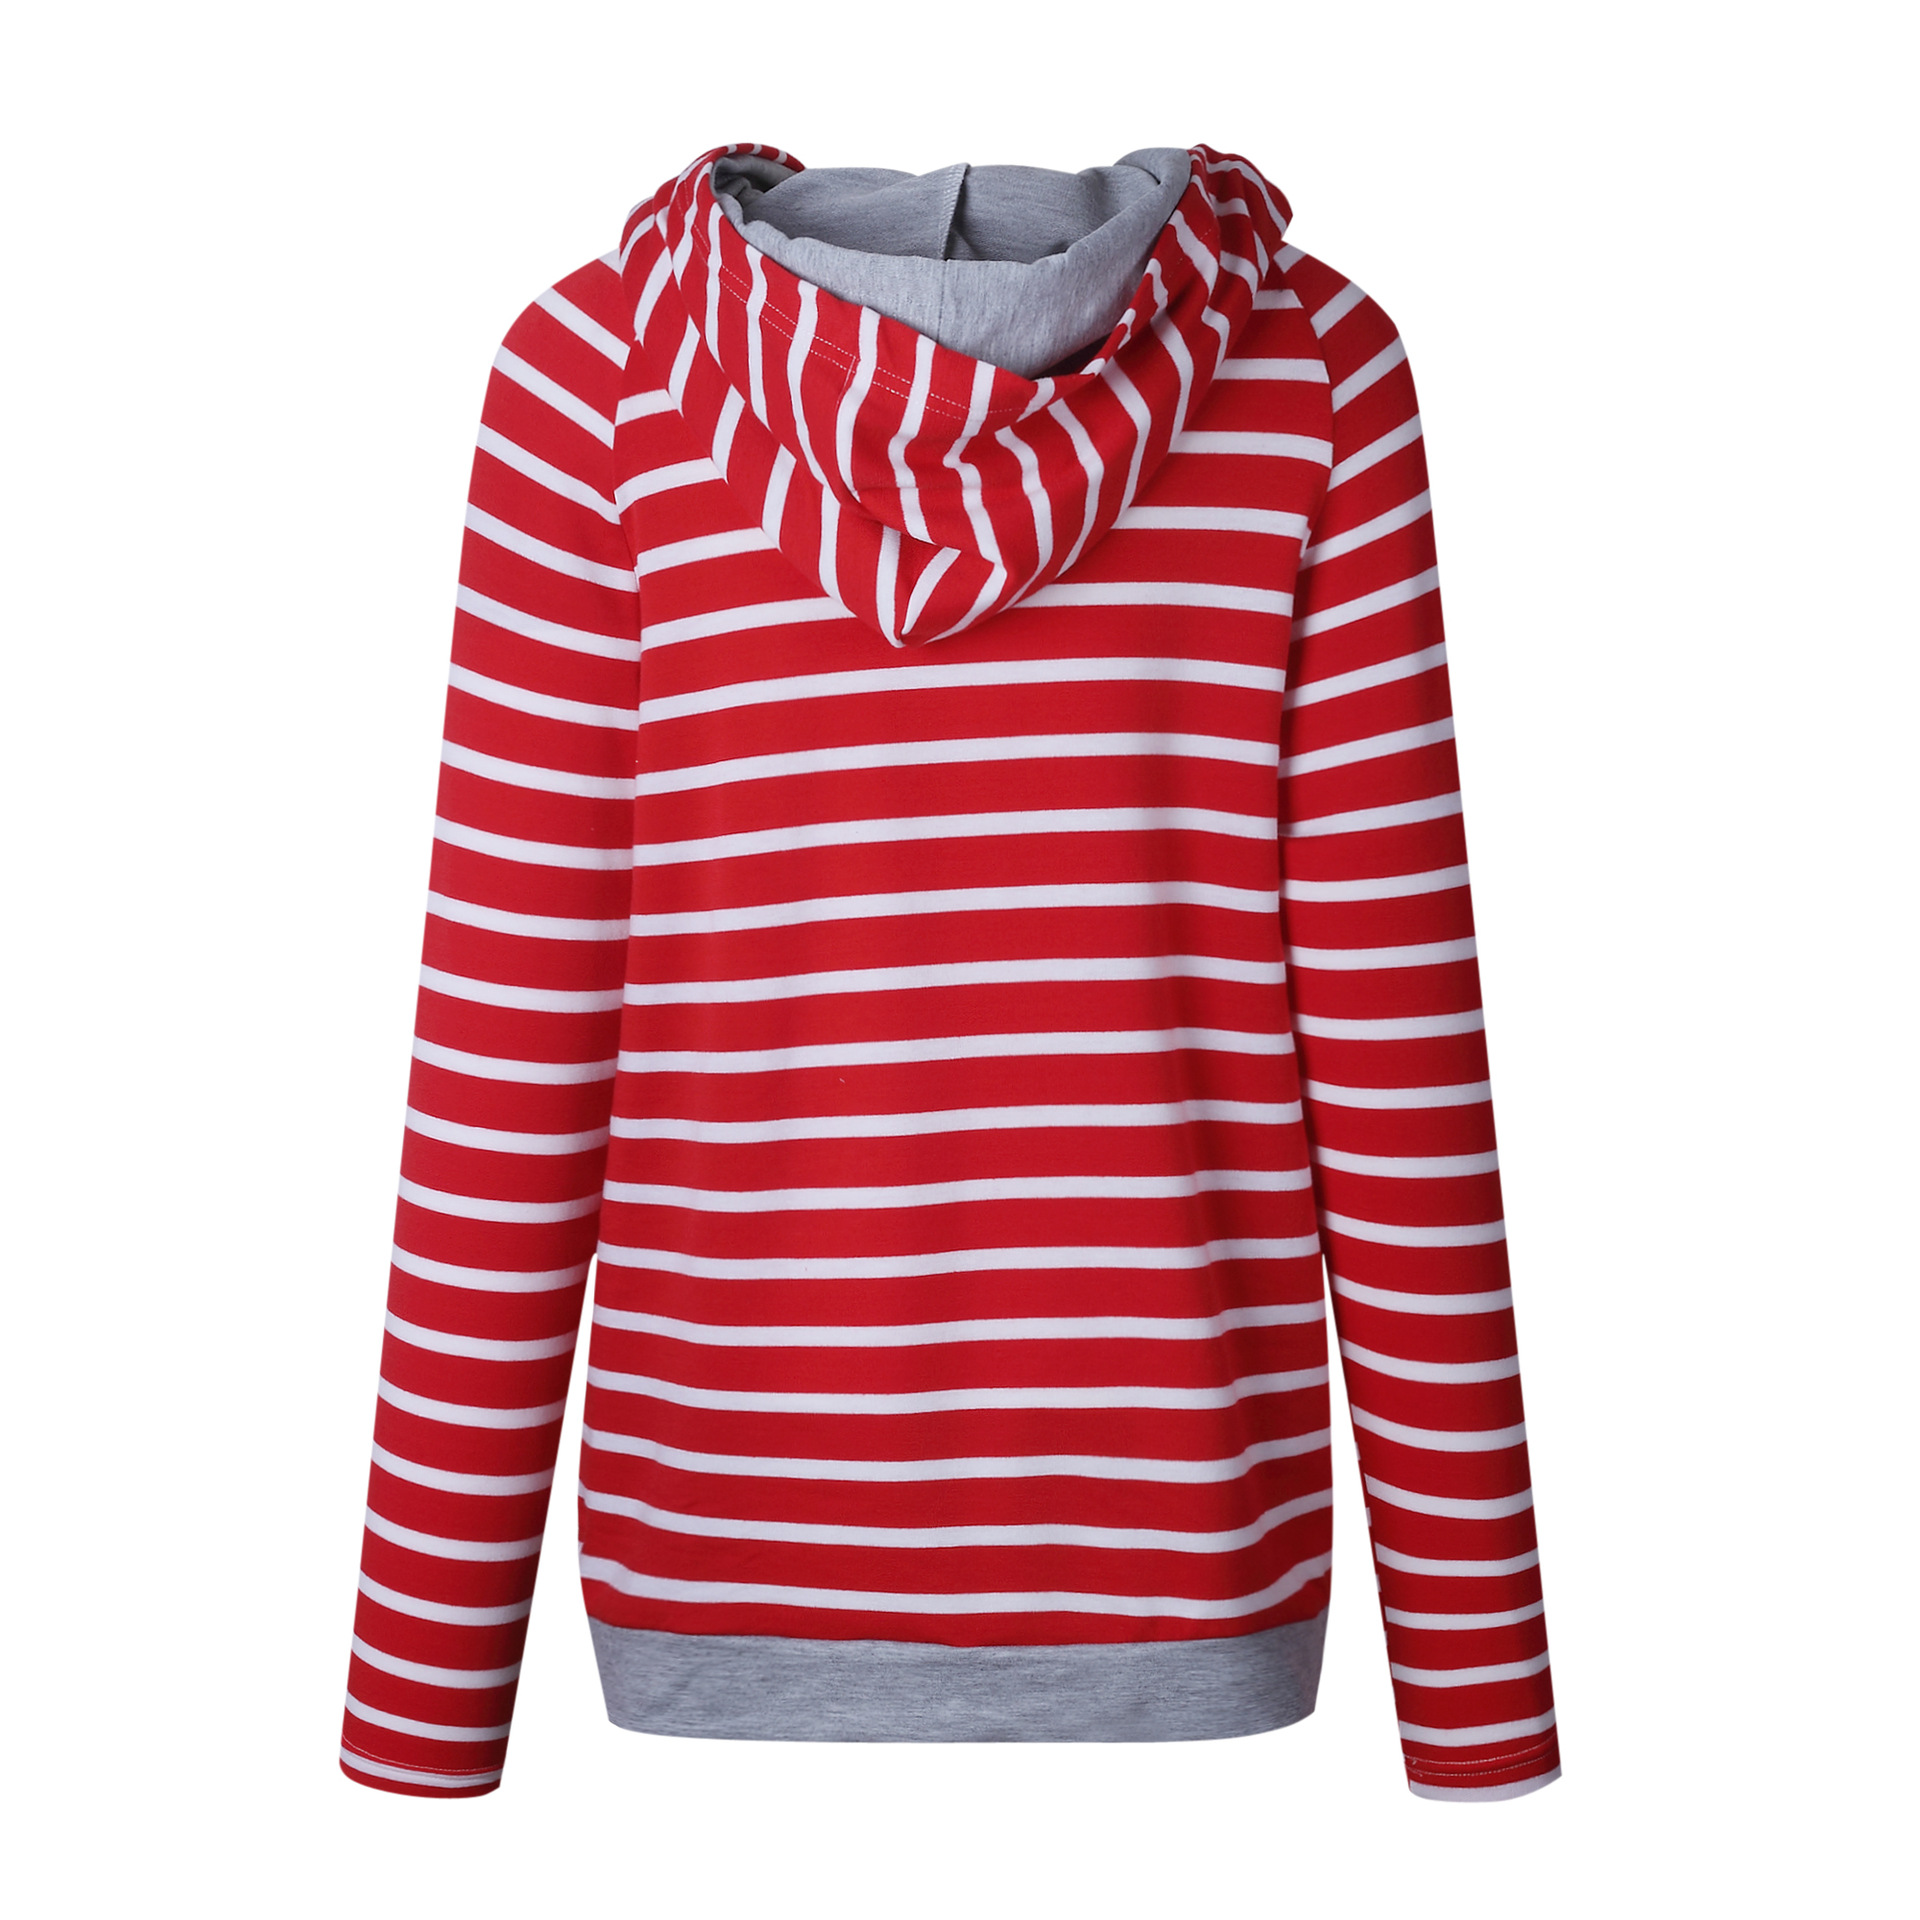 Women's Patchwork Striped Pullover Long Sleeve Hoodie, Tops With Pockets, Hooded Sweatshirt 40